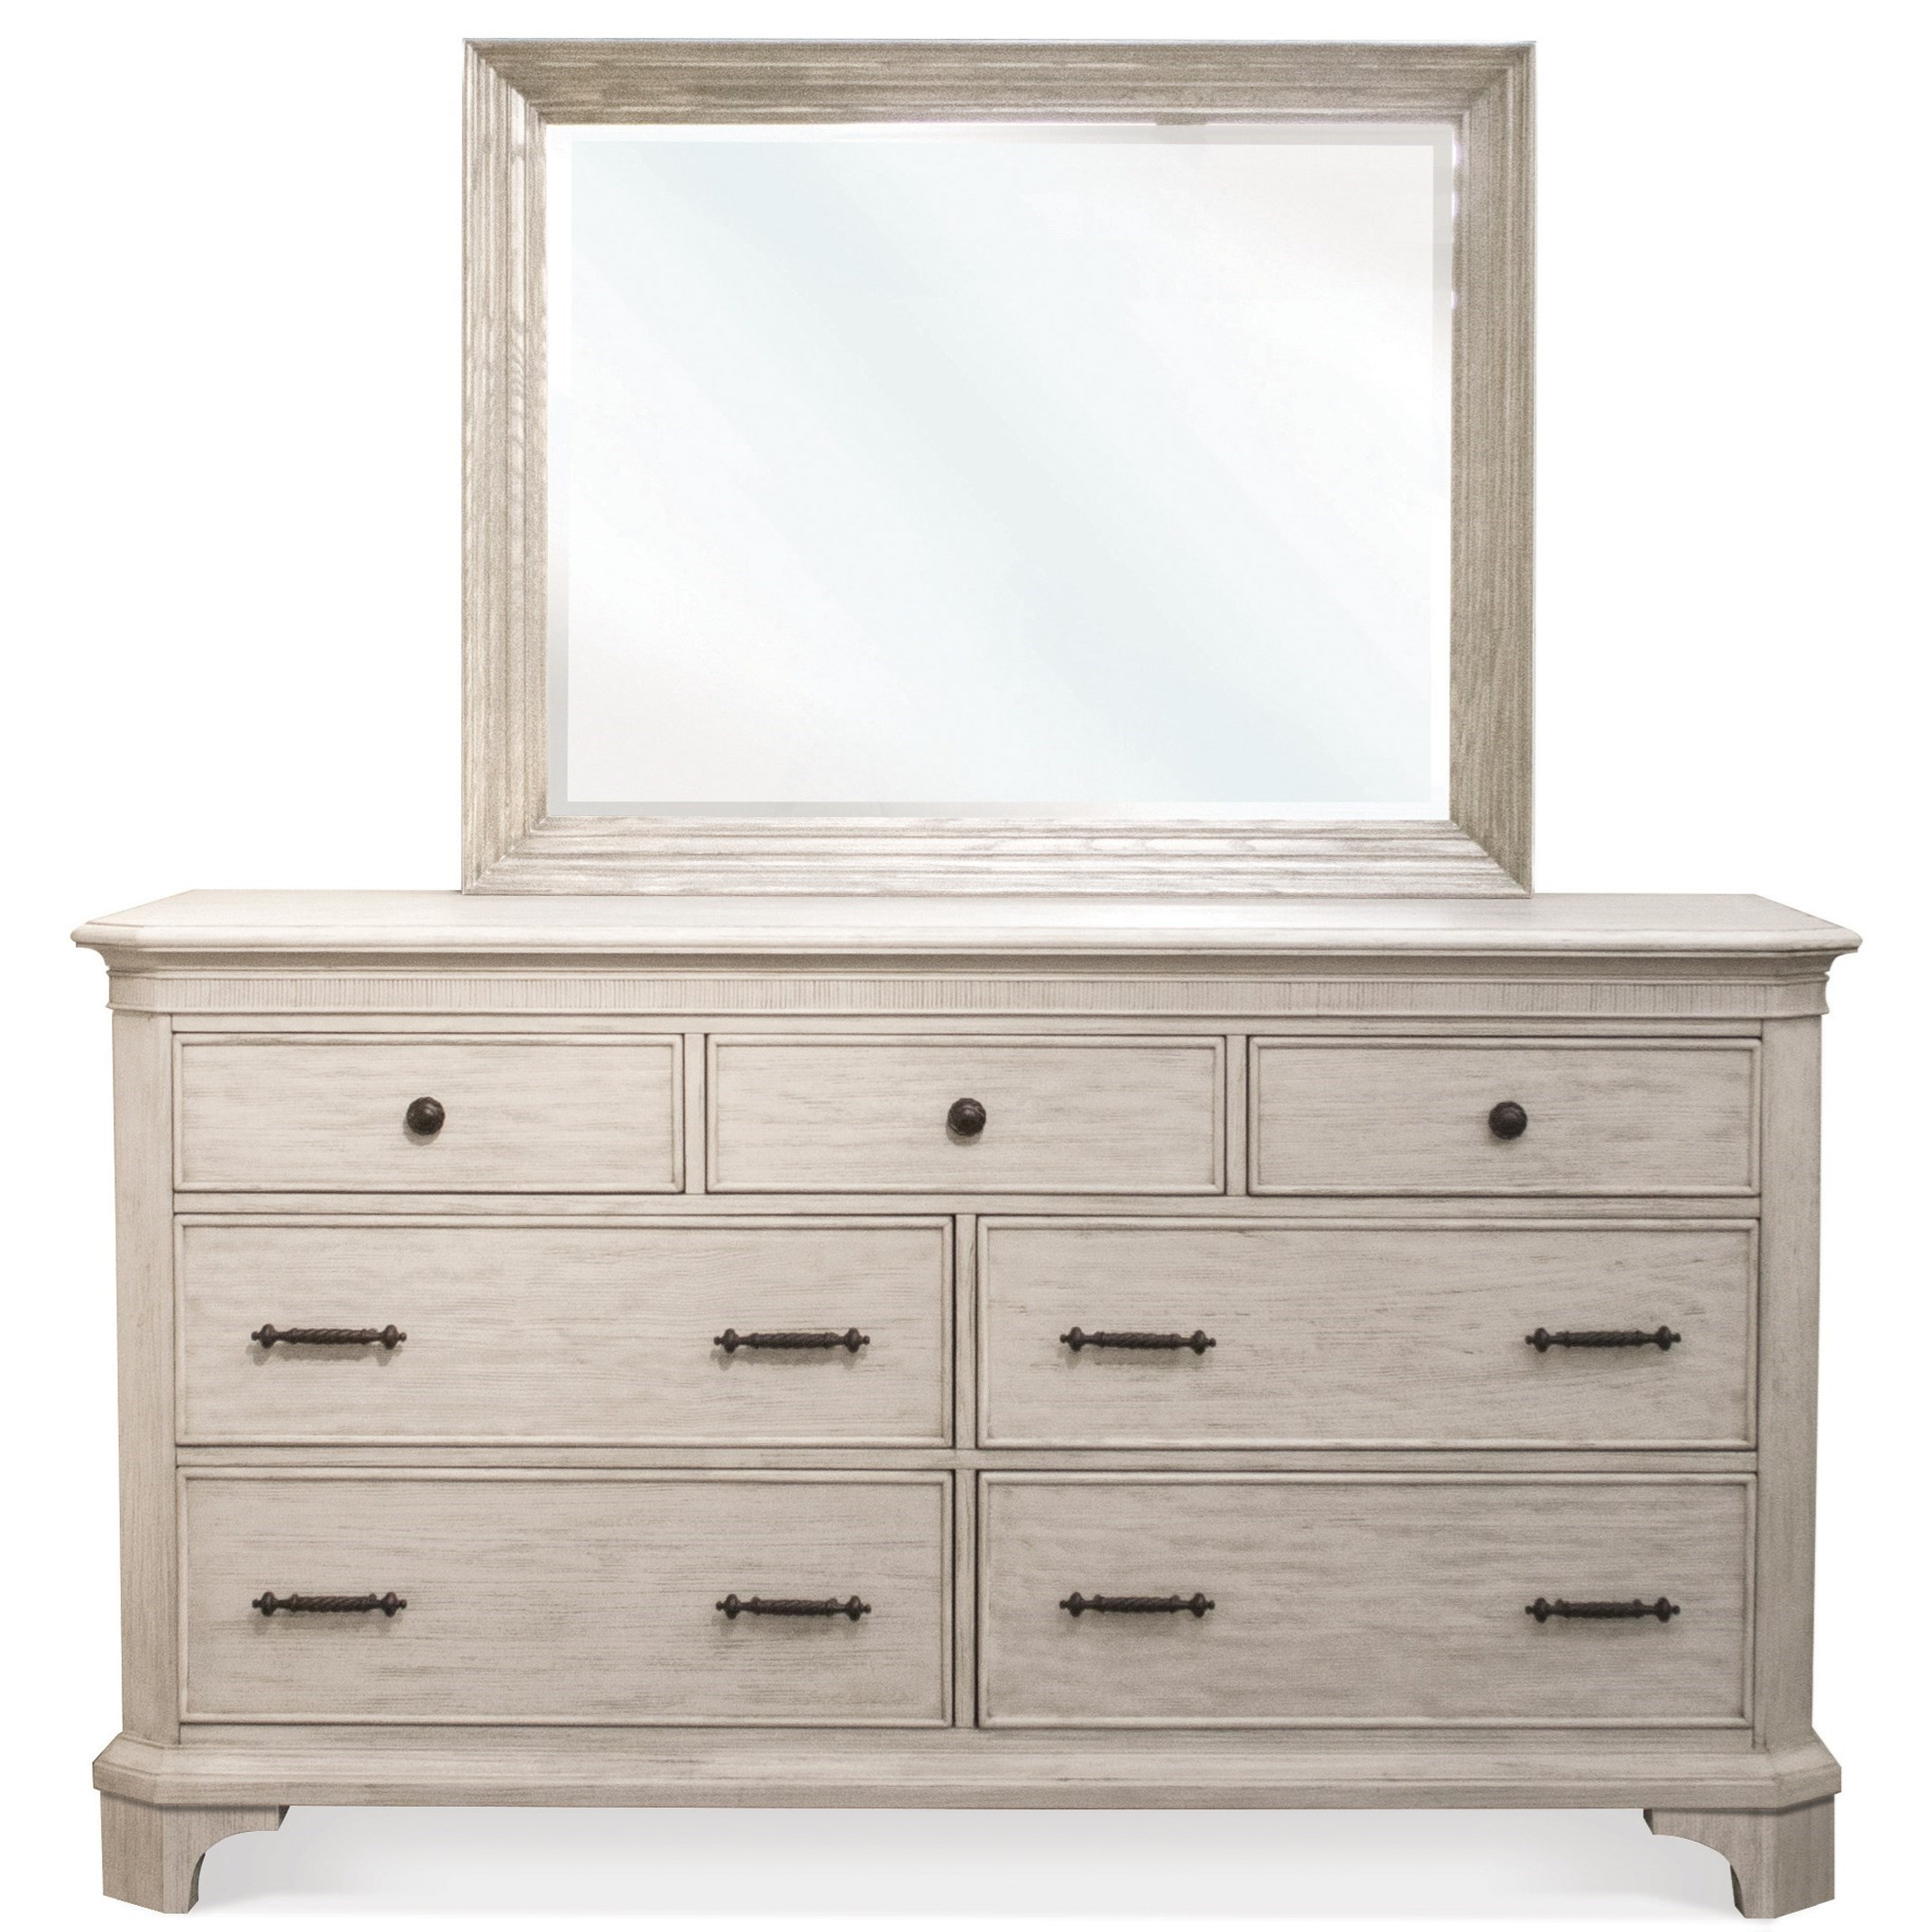 Riverside Furniture Aberdeen Dresser and Mirror Combo - Item Number: 21260+3